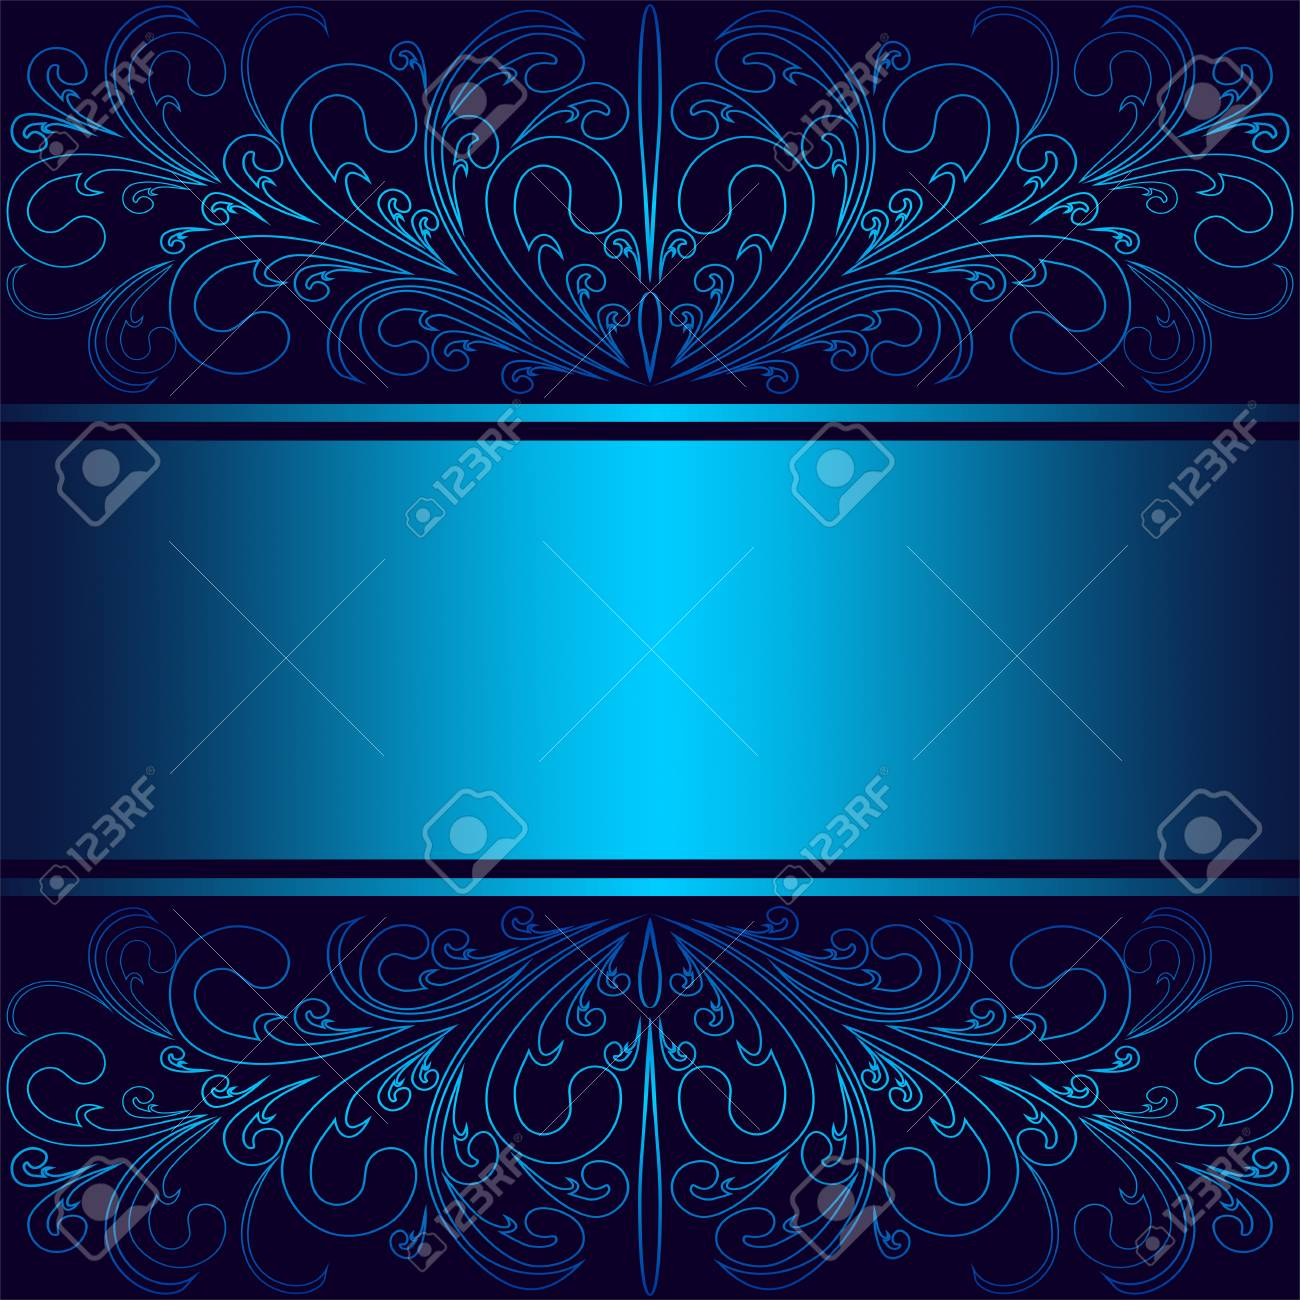 Luxury blue Background with elegant floral Borders and Ribbon (Place for Text). - 103610164